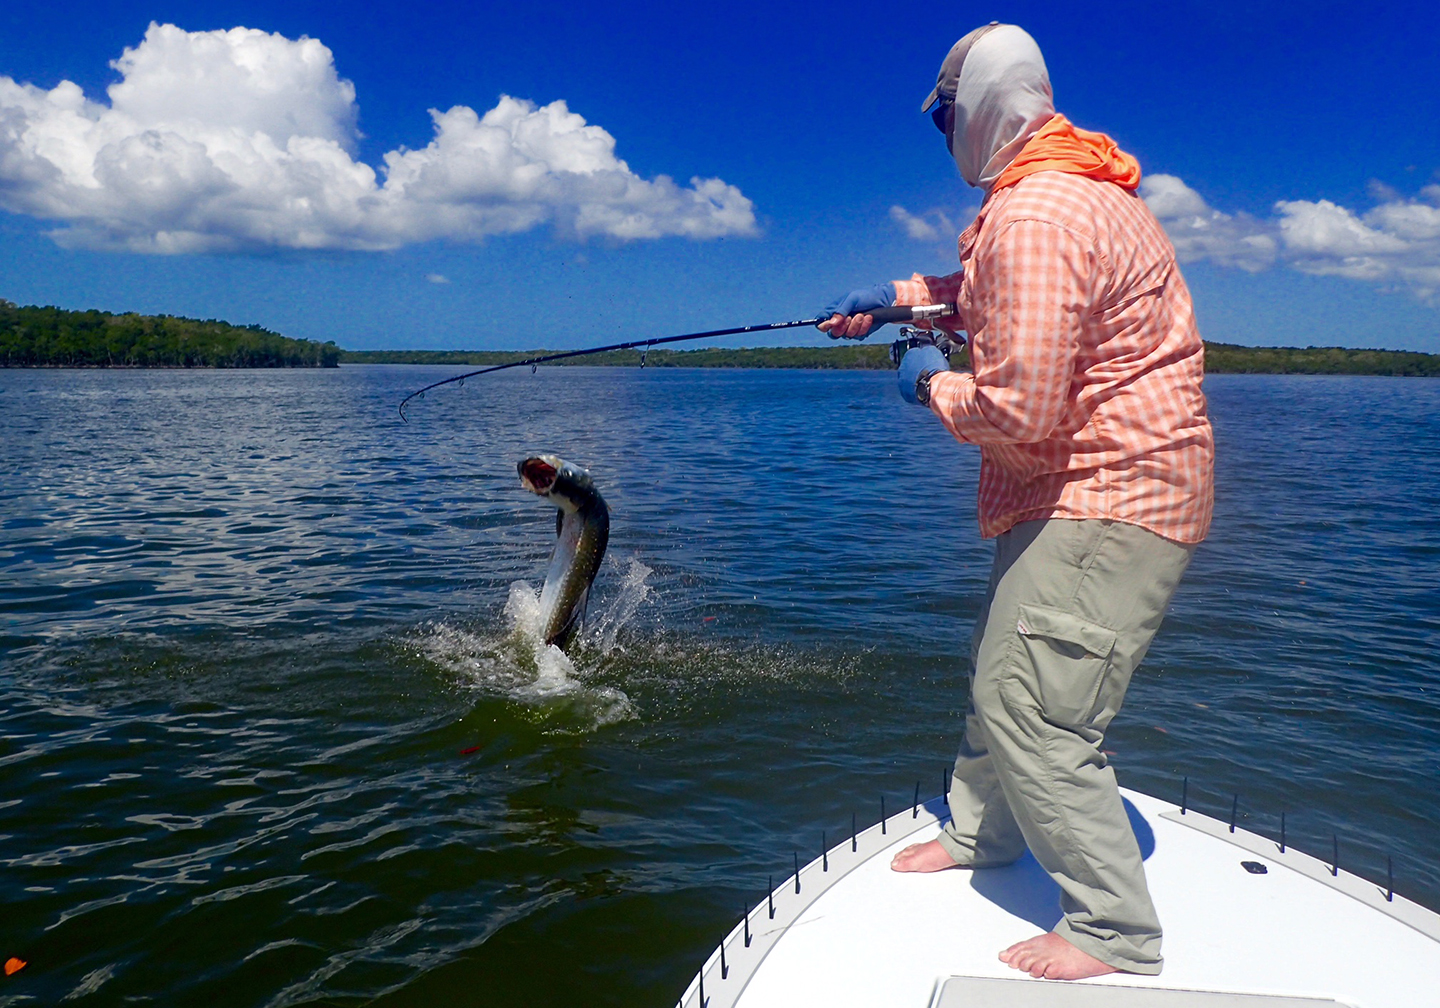 A recreational angler at the front of a boat fighting a Tarpon fish which is jumping out of the water